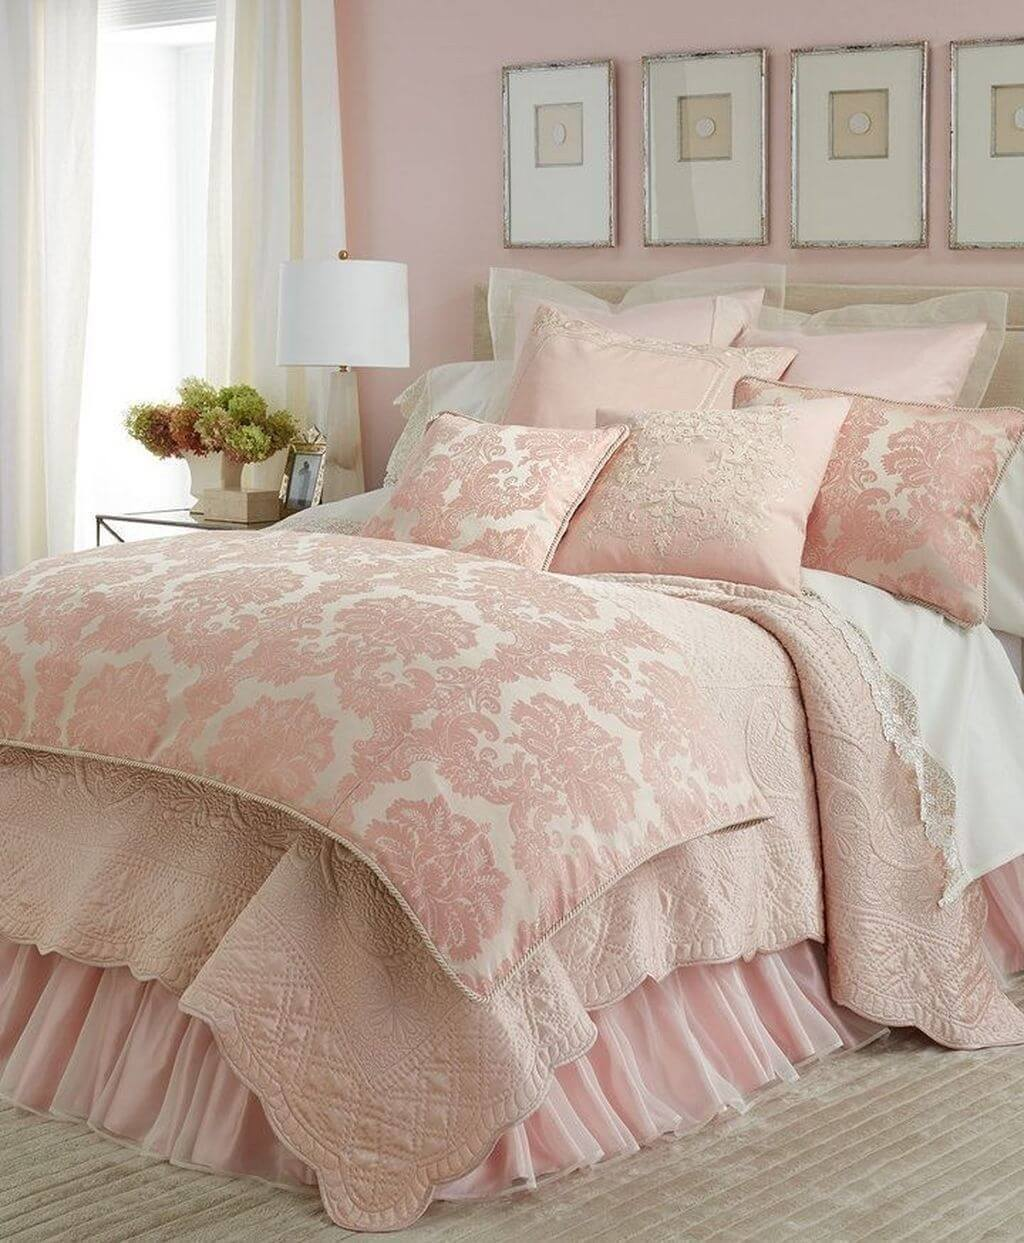 25 Fashionable Shabby Chic Bedroom (All Are Stylish!) - Q6